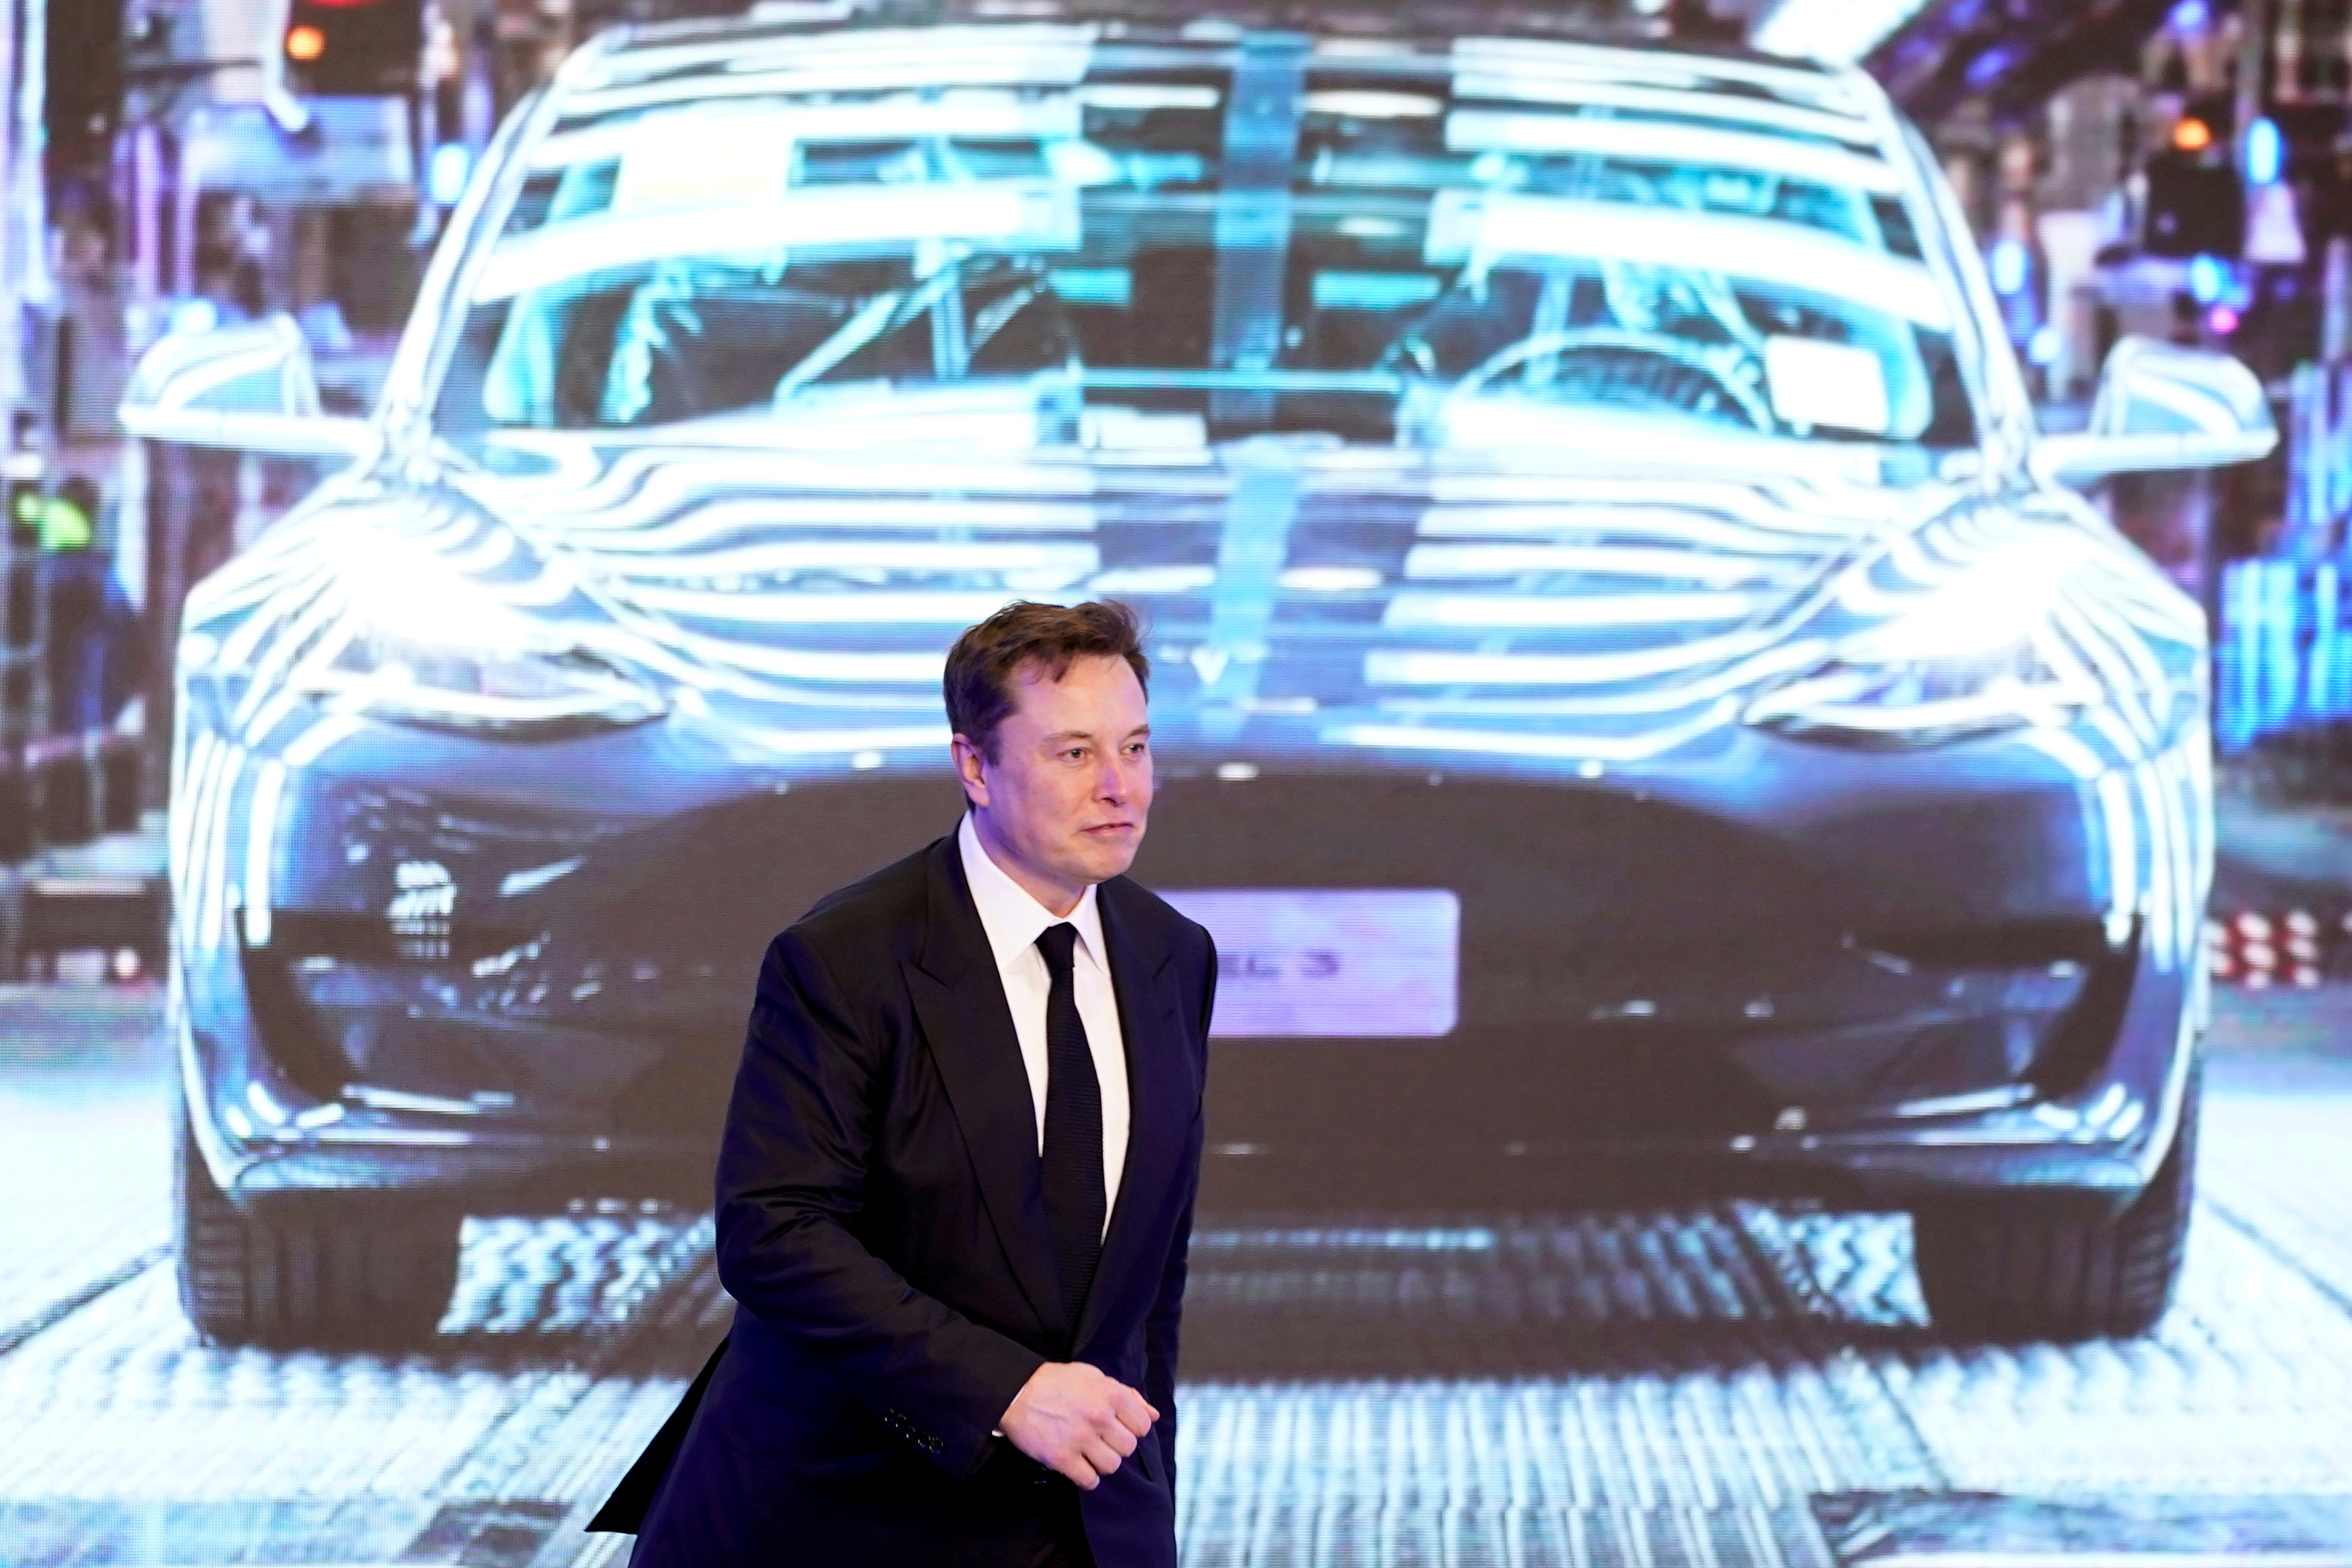 Tesla Inc CEO Elon Musk walks next to a screen showing an image of Tesla Model 3 car during an opening ceremony for Tesla China-made Model Y program in Shanghai, China January 7, 2020. REUTERS/Aly Song/File Photo/File Photo